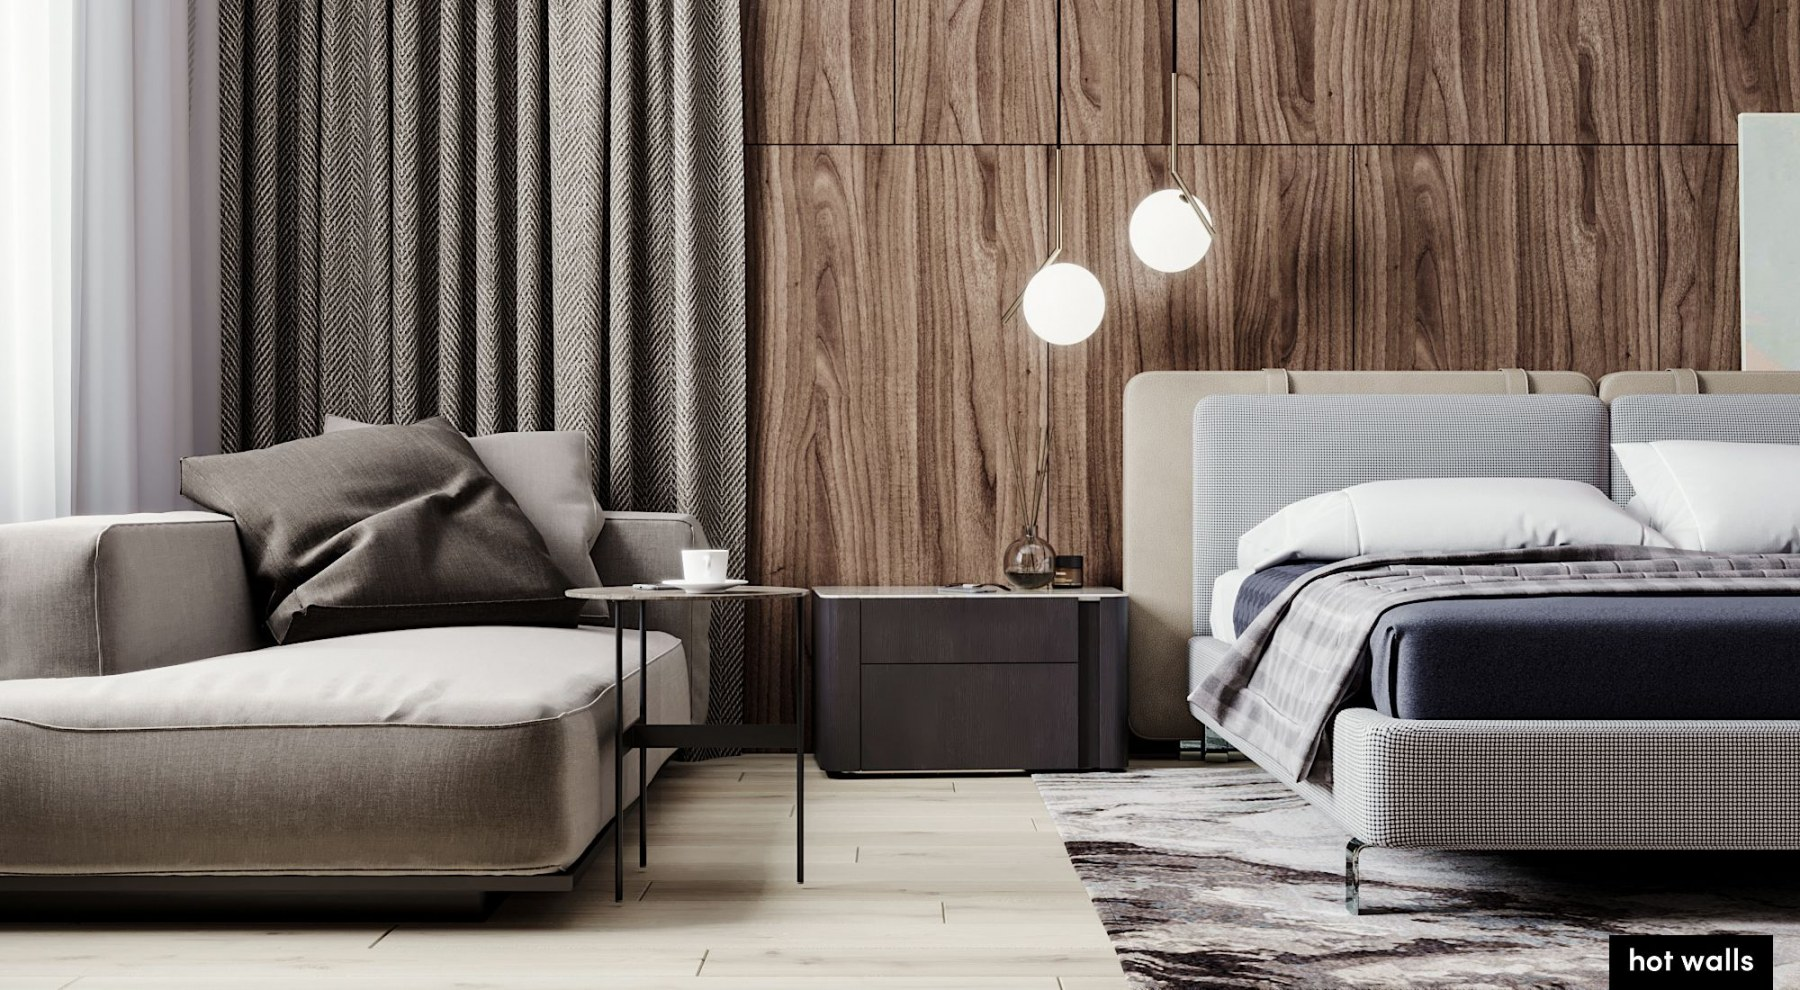 8 Feng Shui Tips Interior Designers HATE That You Know!